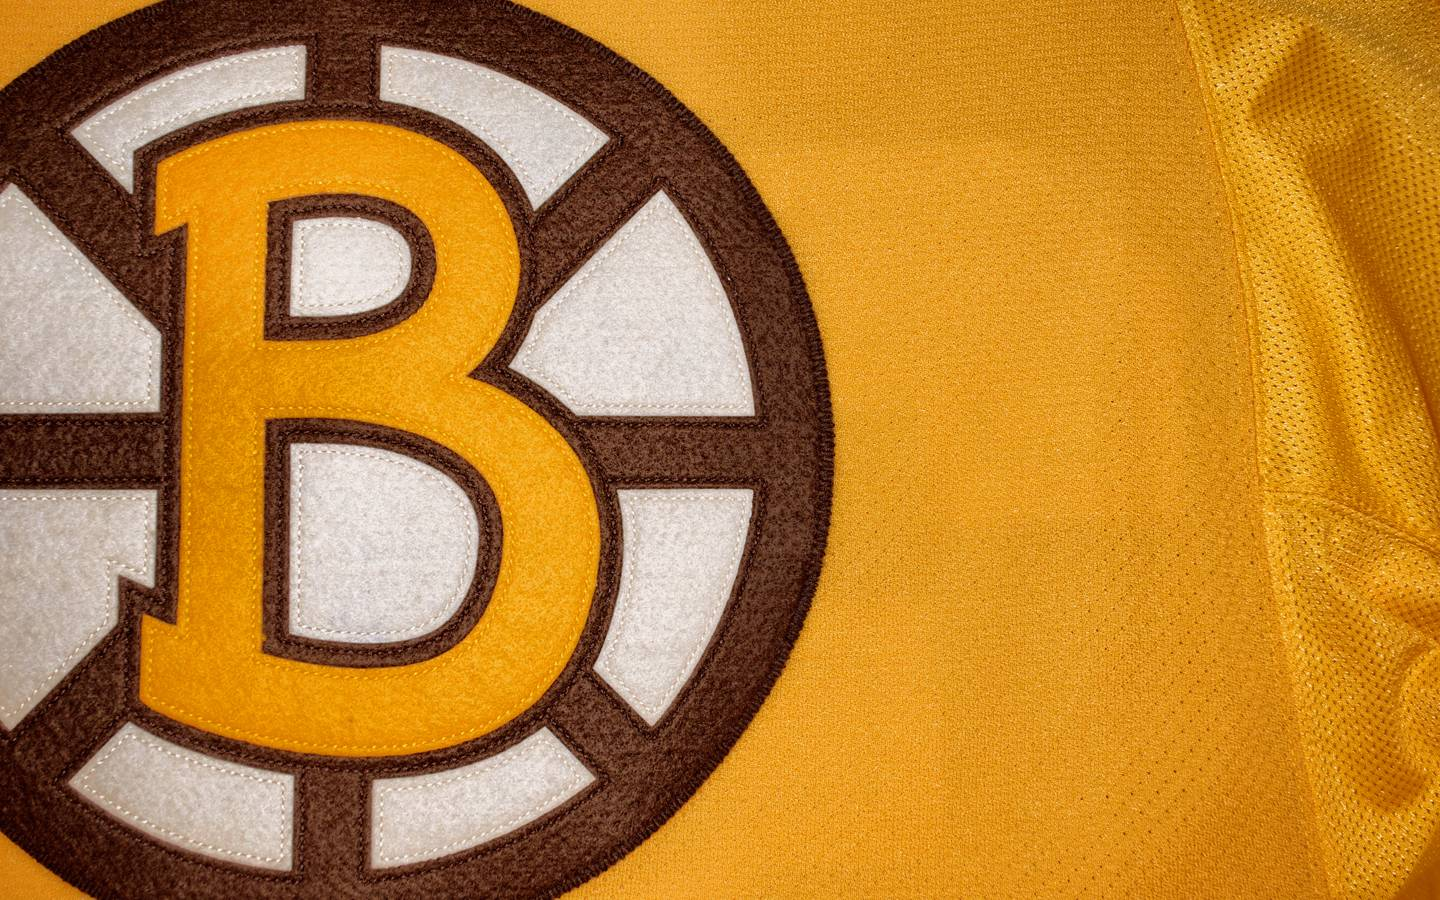 Boston Bruins wallpapers | Boston Bruins background - Page 5